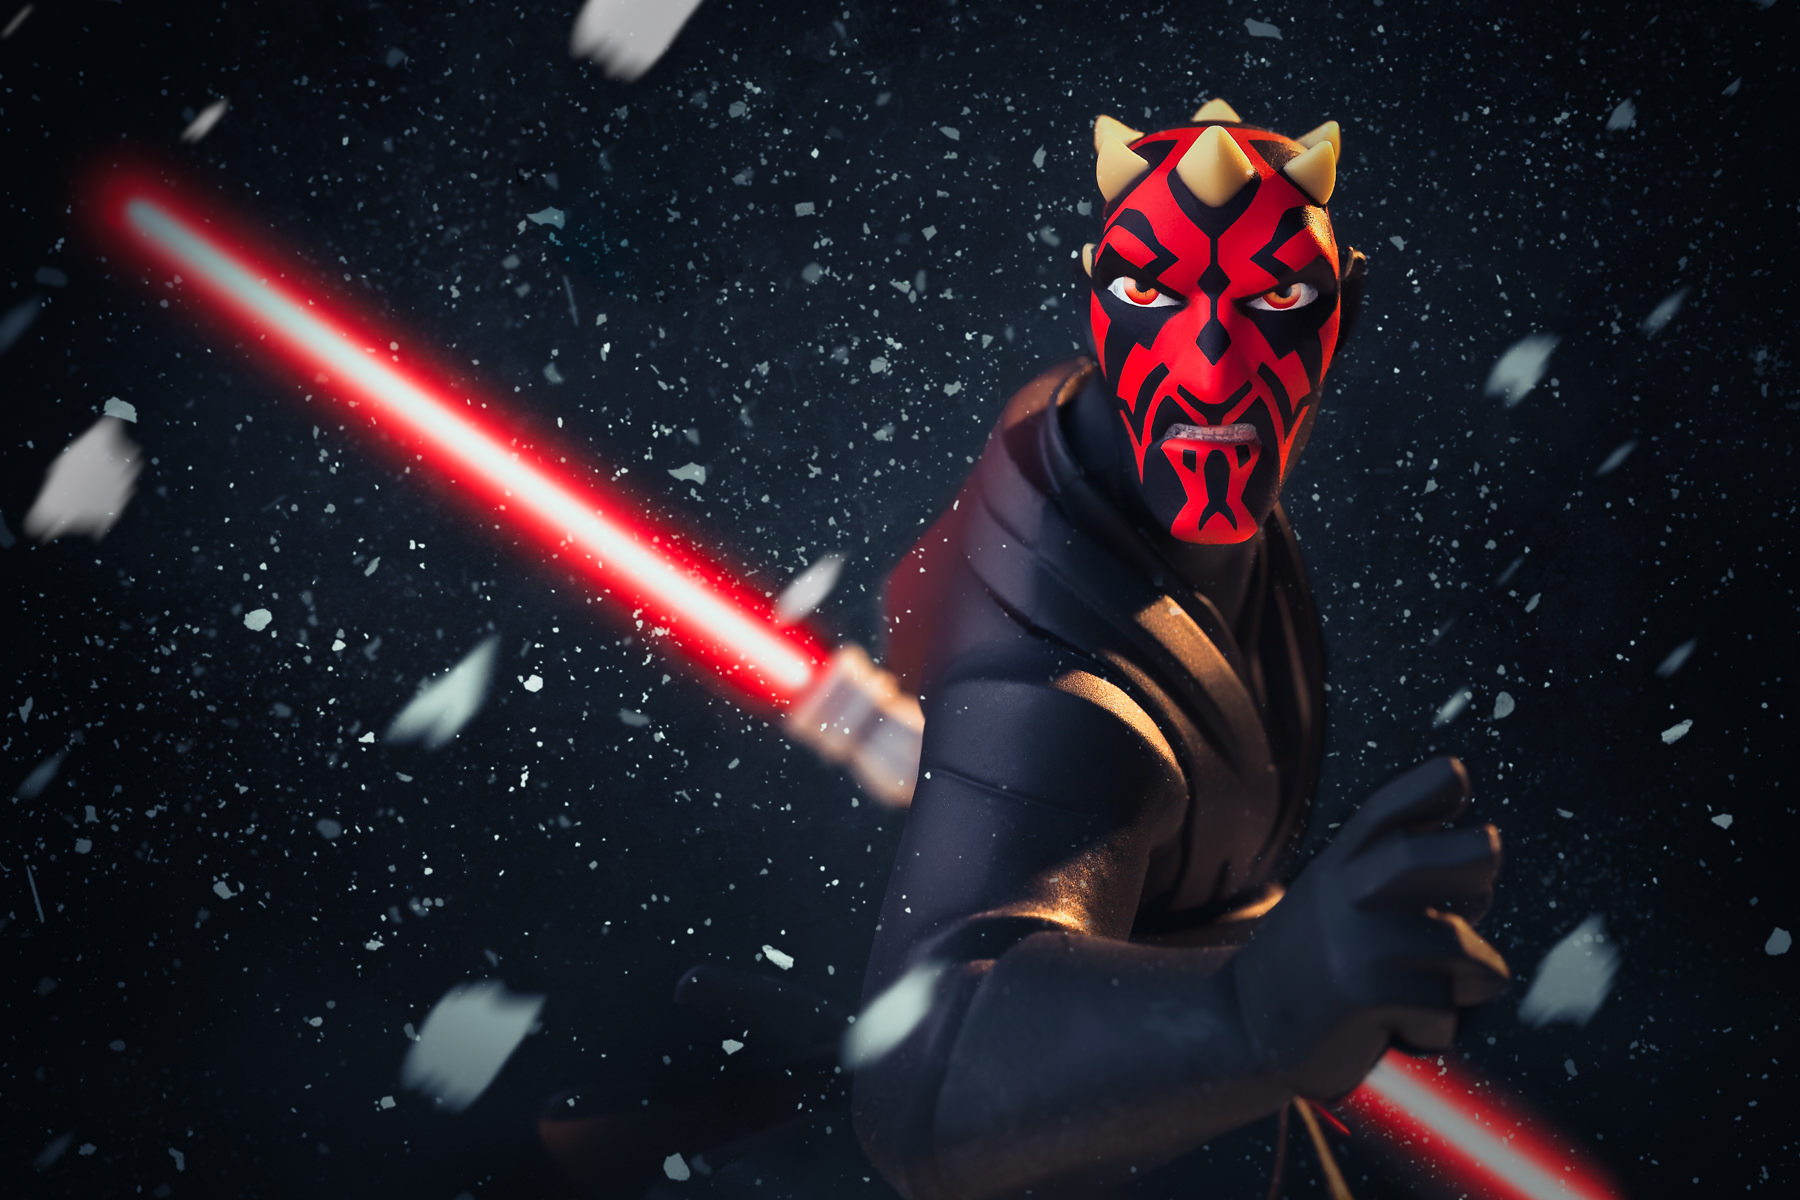 Disney Infinity Star Wars Darth Maul